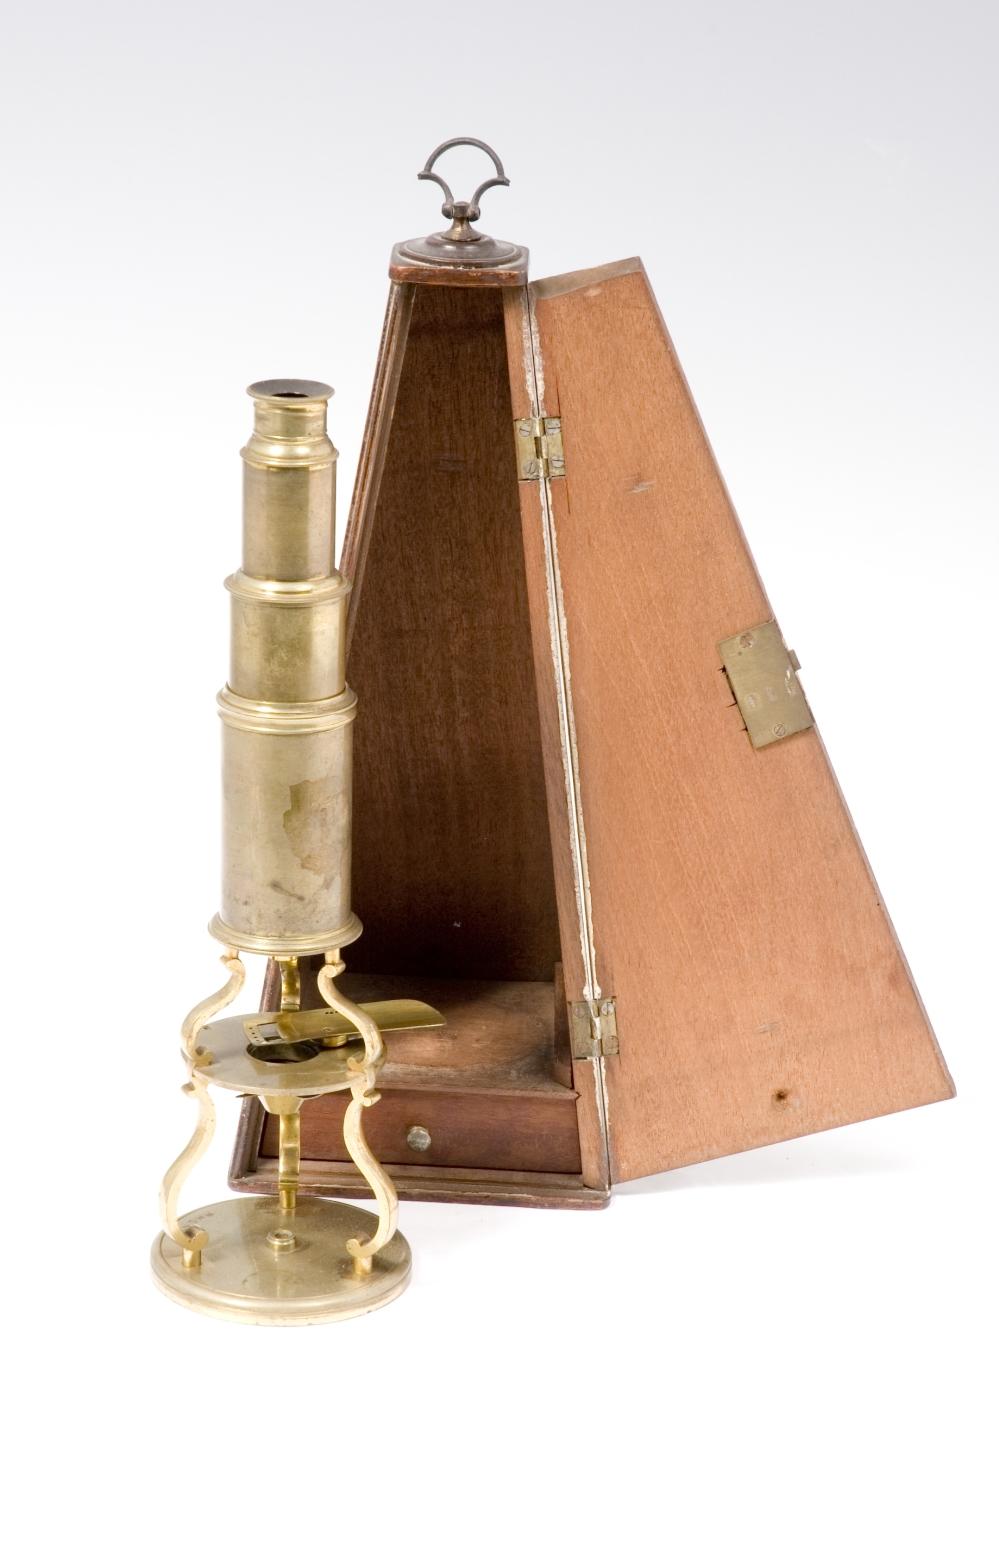 preview image for Brass Culpeper Type Microscope with Accessories and Case